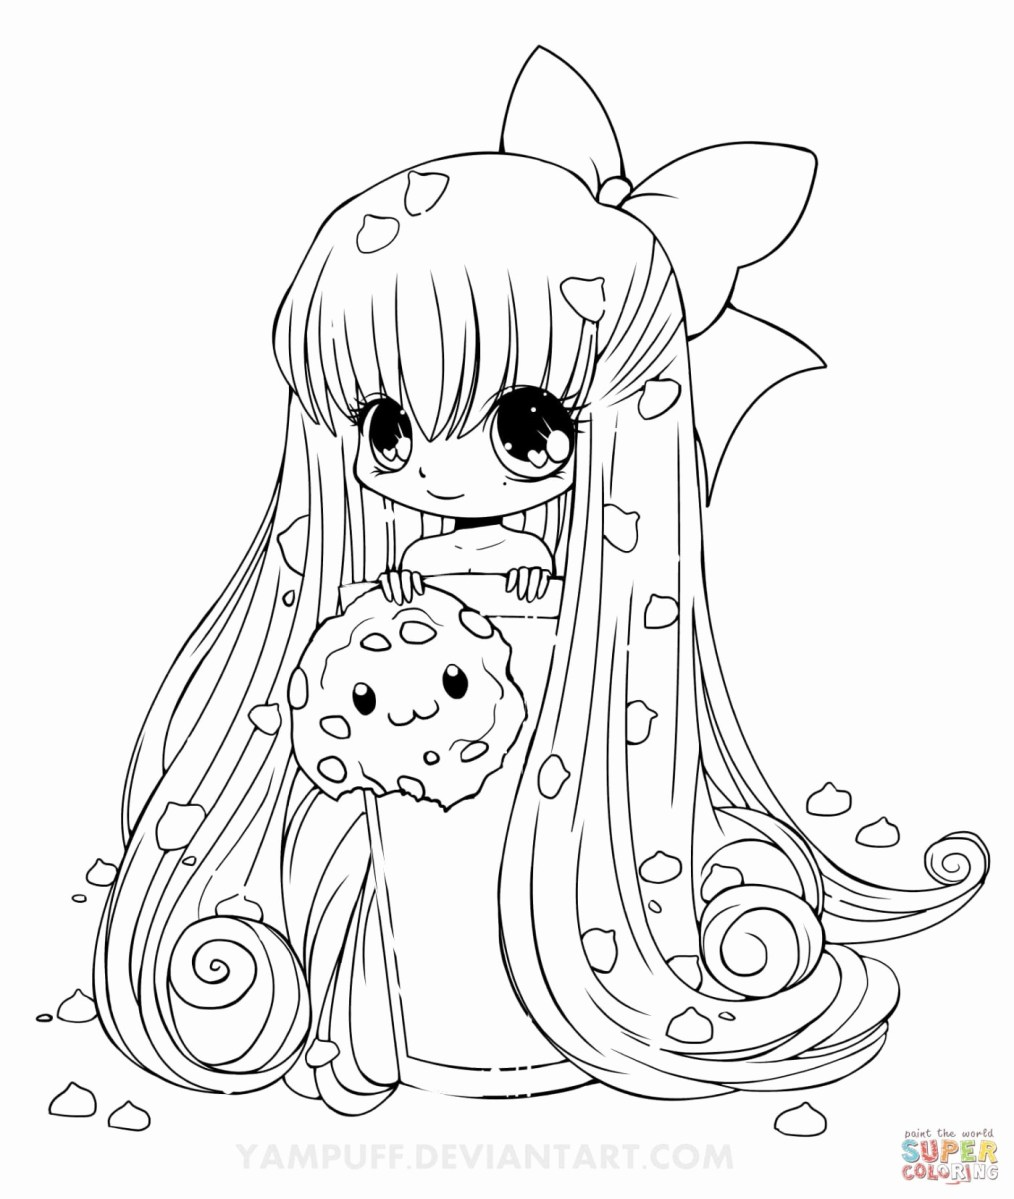 Cute Girl Coloring Pages Anime Girl Coloring Pages Cute